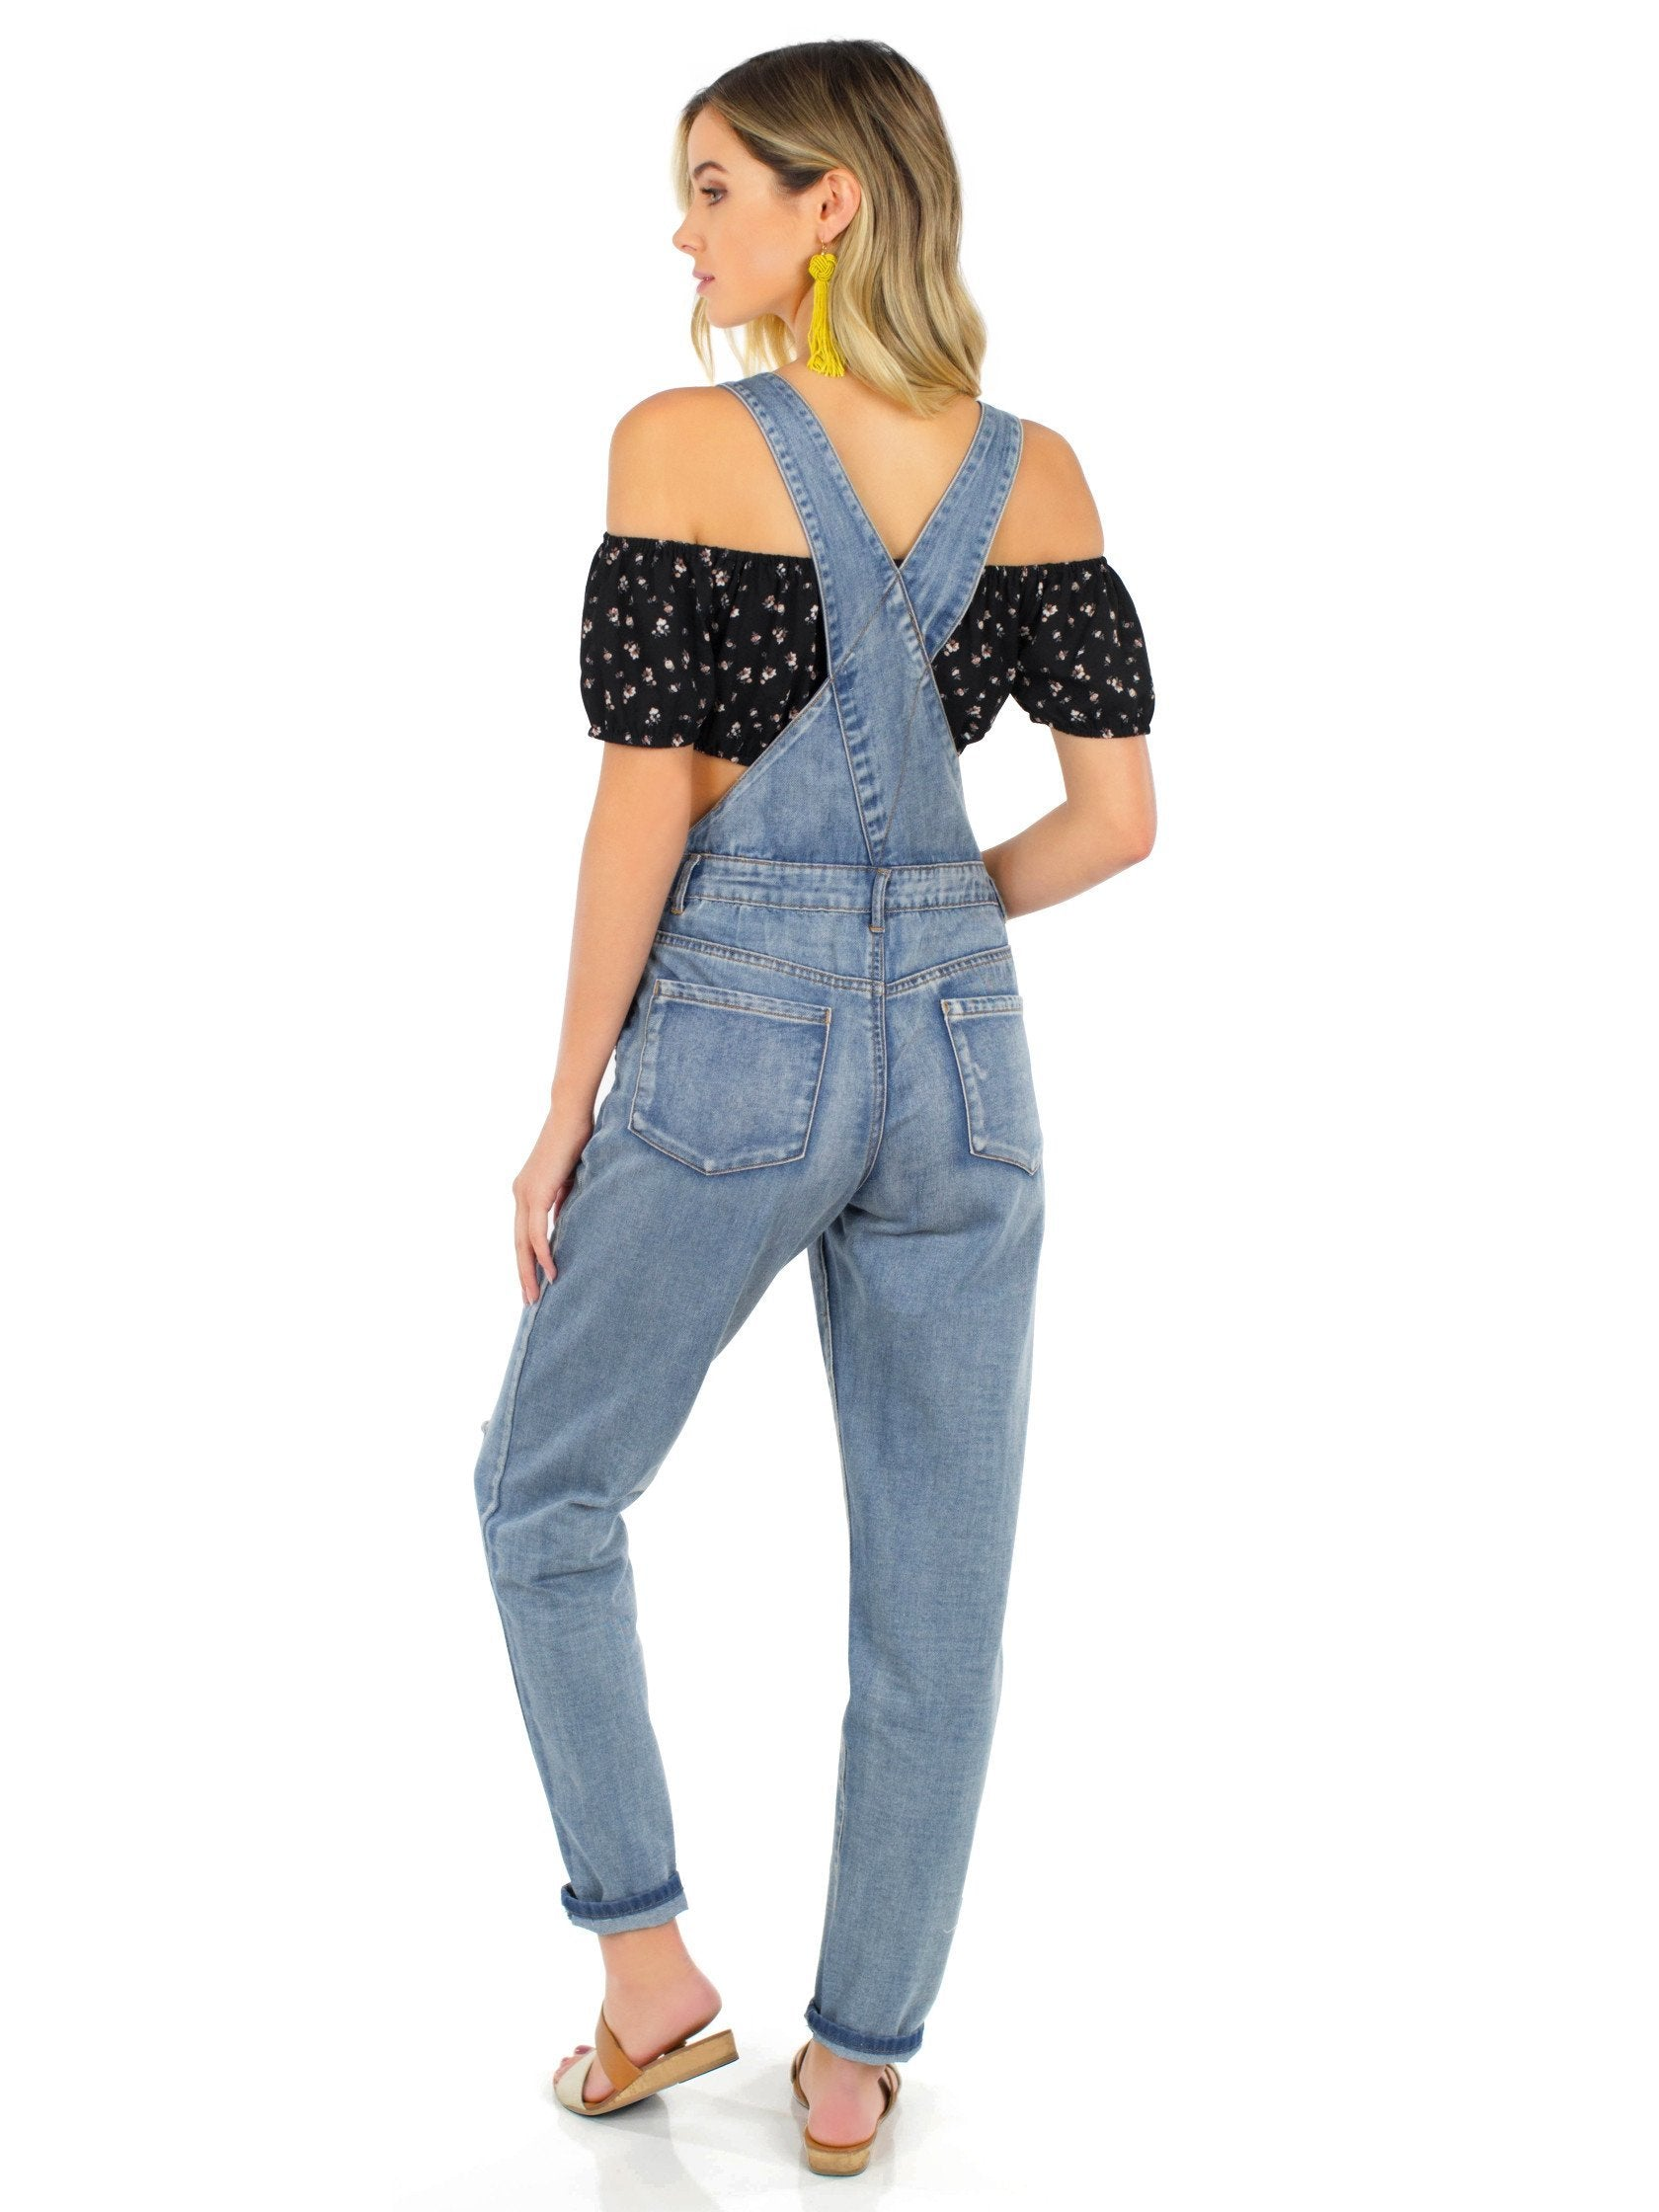 Women wearing a jumpsuit rental from FashionPass called Here For A Good Time Overalls